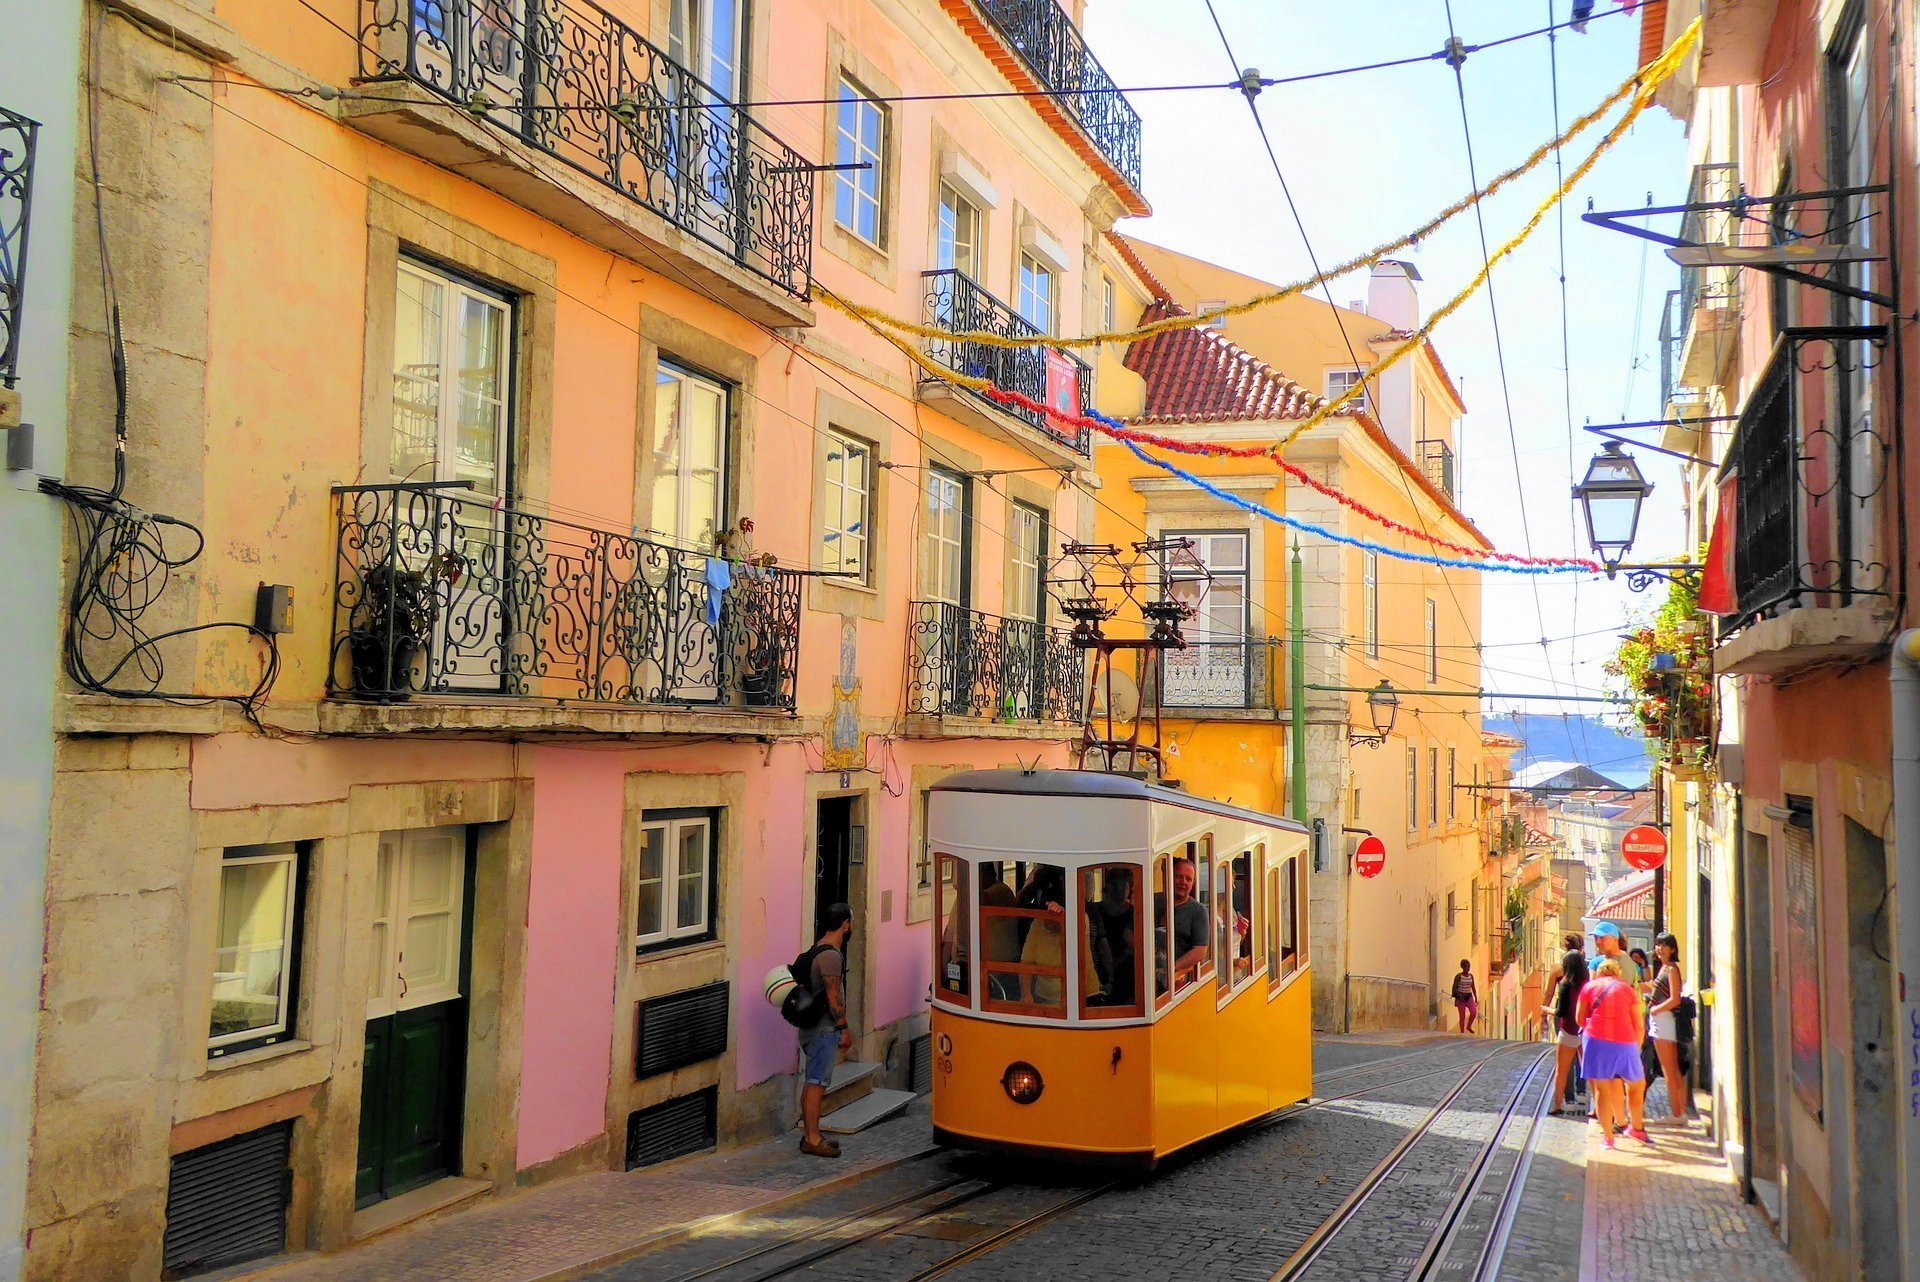 10 Best Photo Spots in Lisbon, Portugal